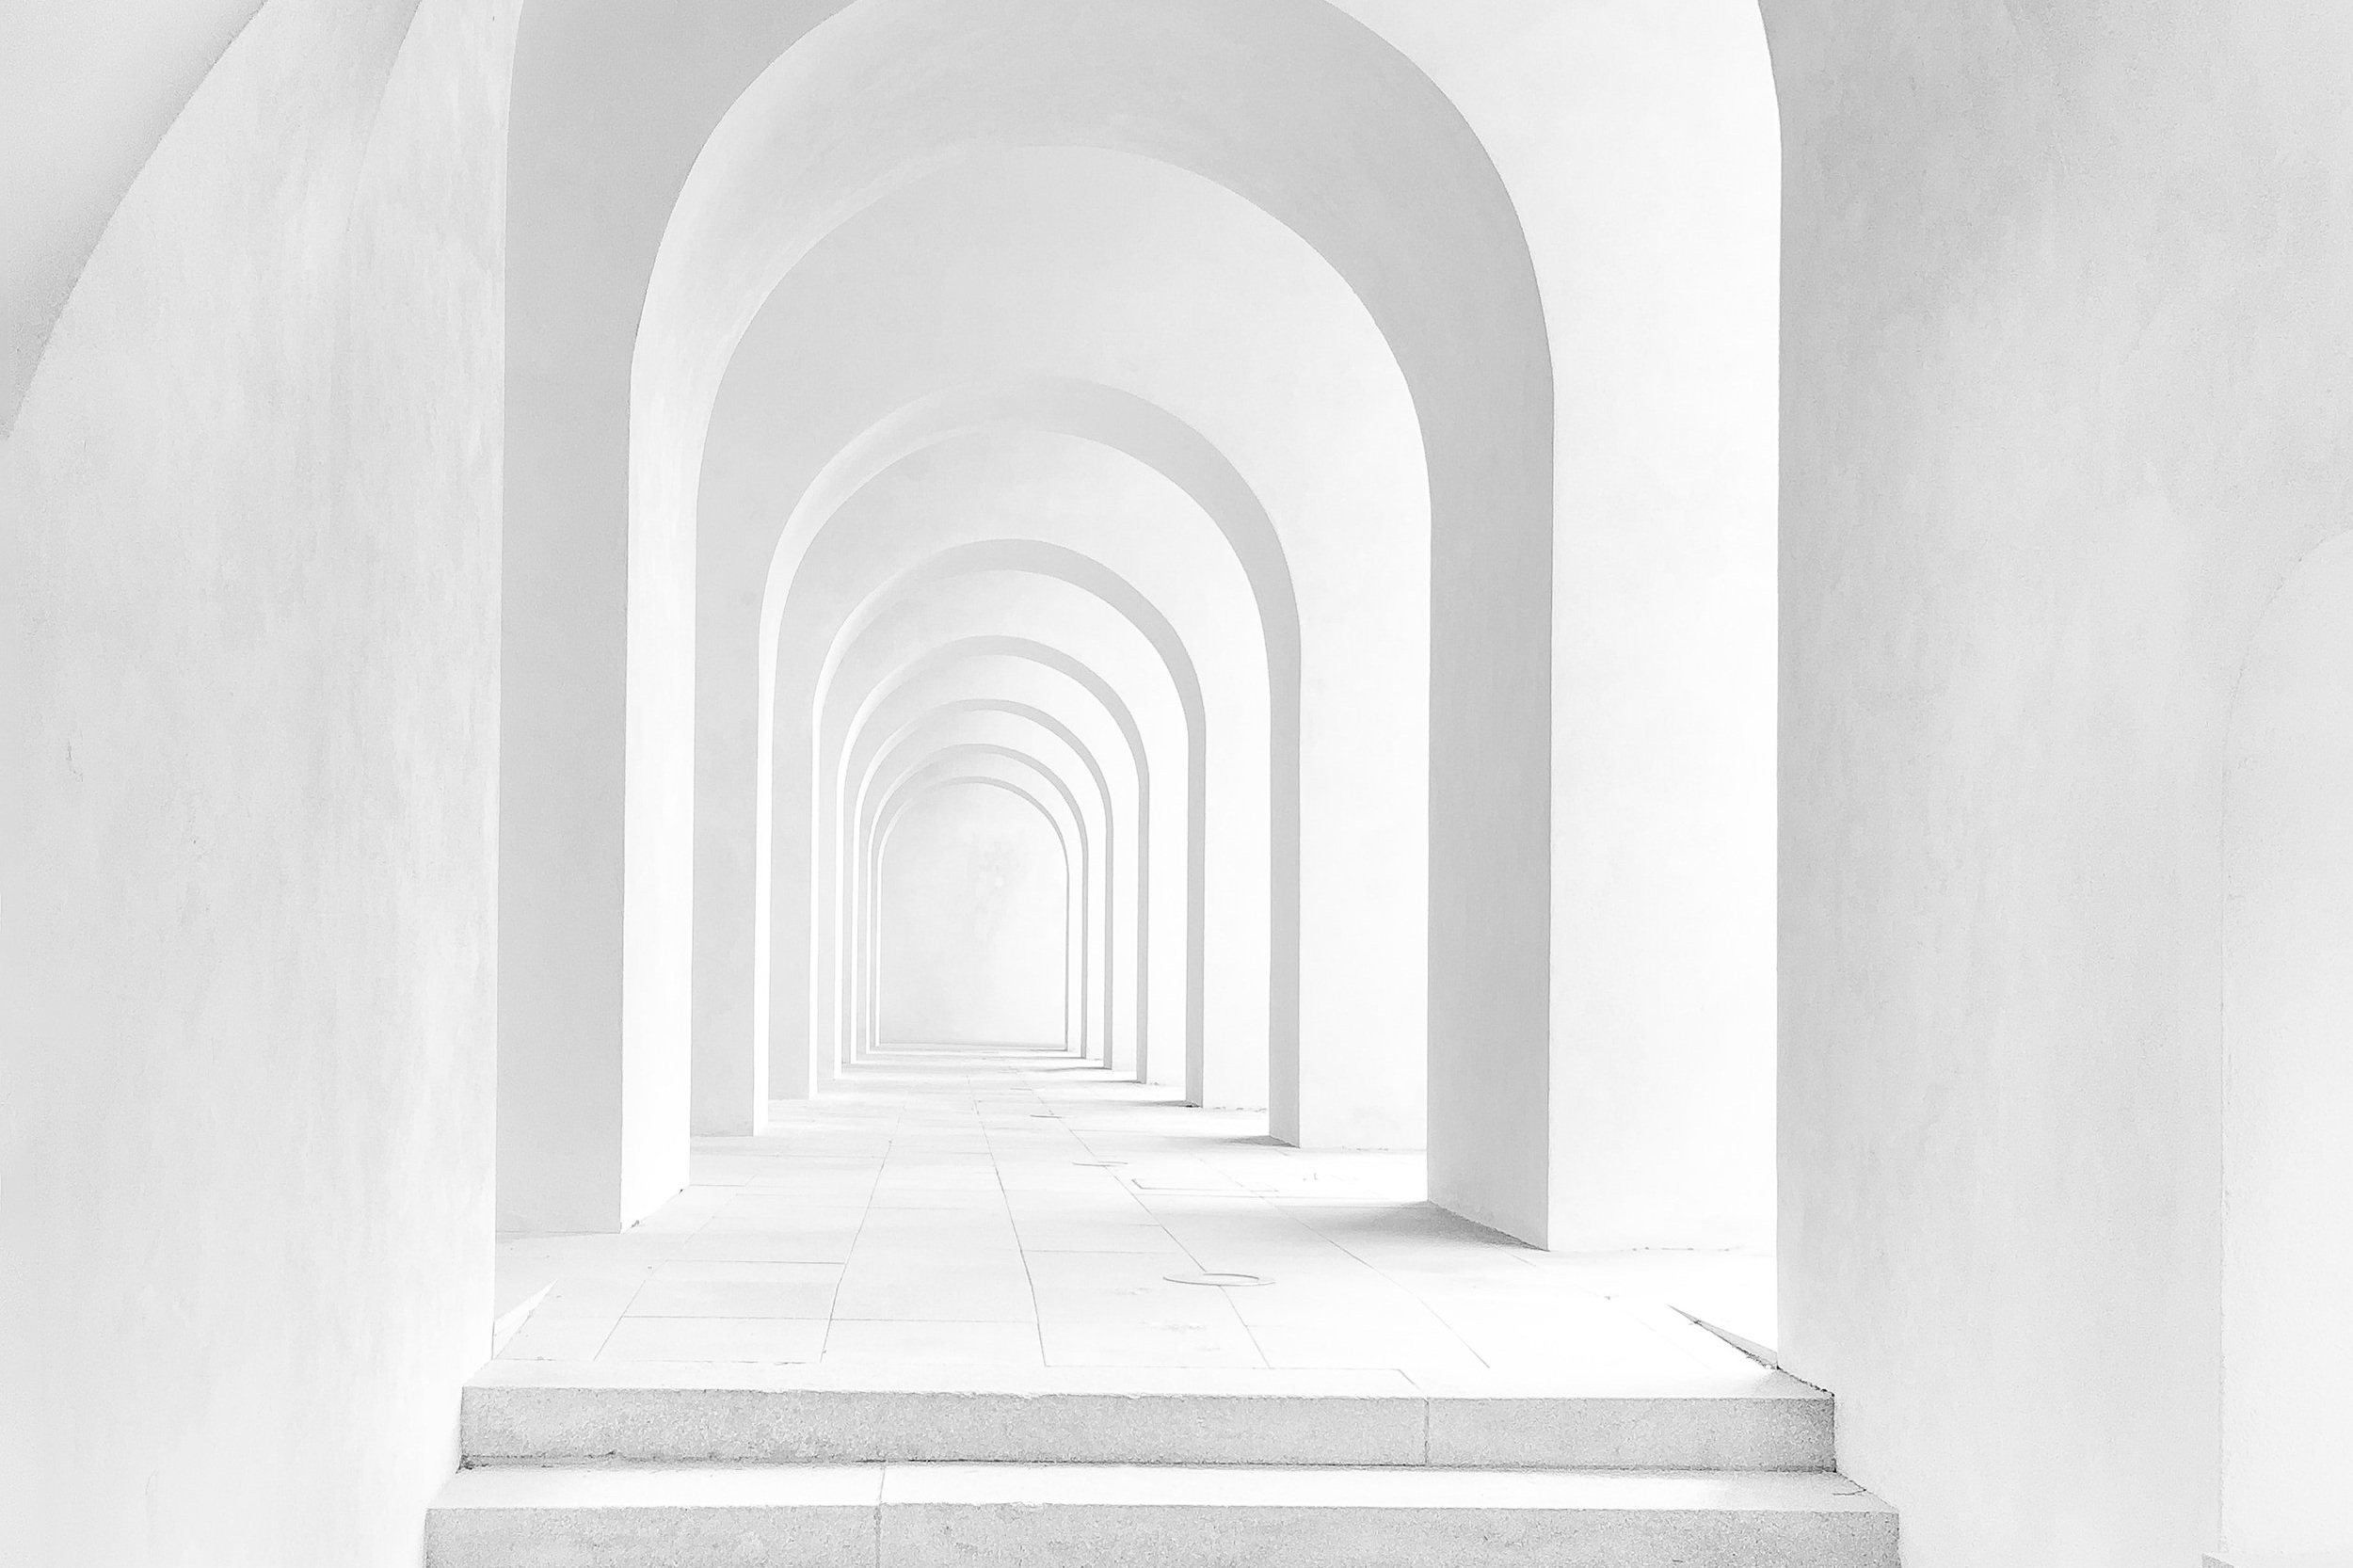 About exhale meditation - At exhale meditation, we offer classes, workshops, and coaching to enhance performance and well-being across all areas of your life. Regular meditation helps people to develop a deeper sense of calm, focus, and purpose, which contributes to greater creativity and happiness. For organisations, this means a more engaged and productive workforce as employees feel valued and find more meaning in their work.